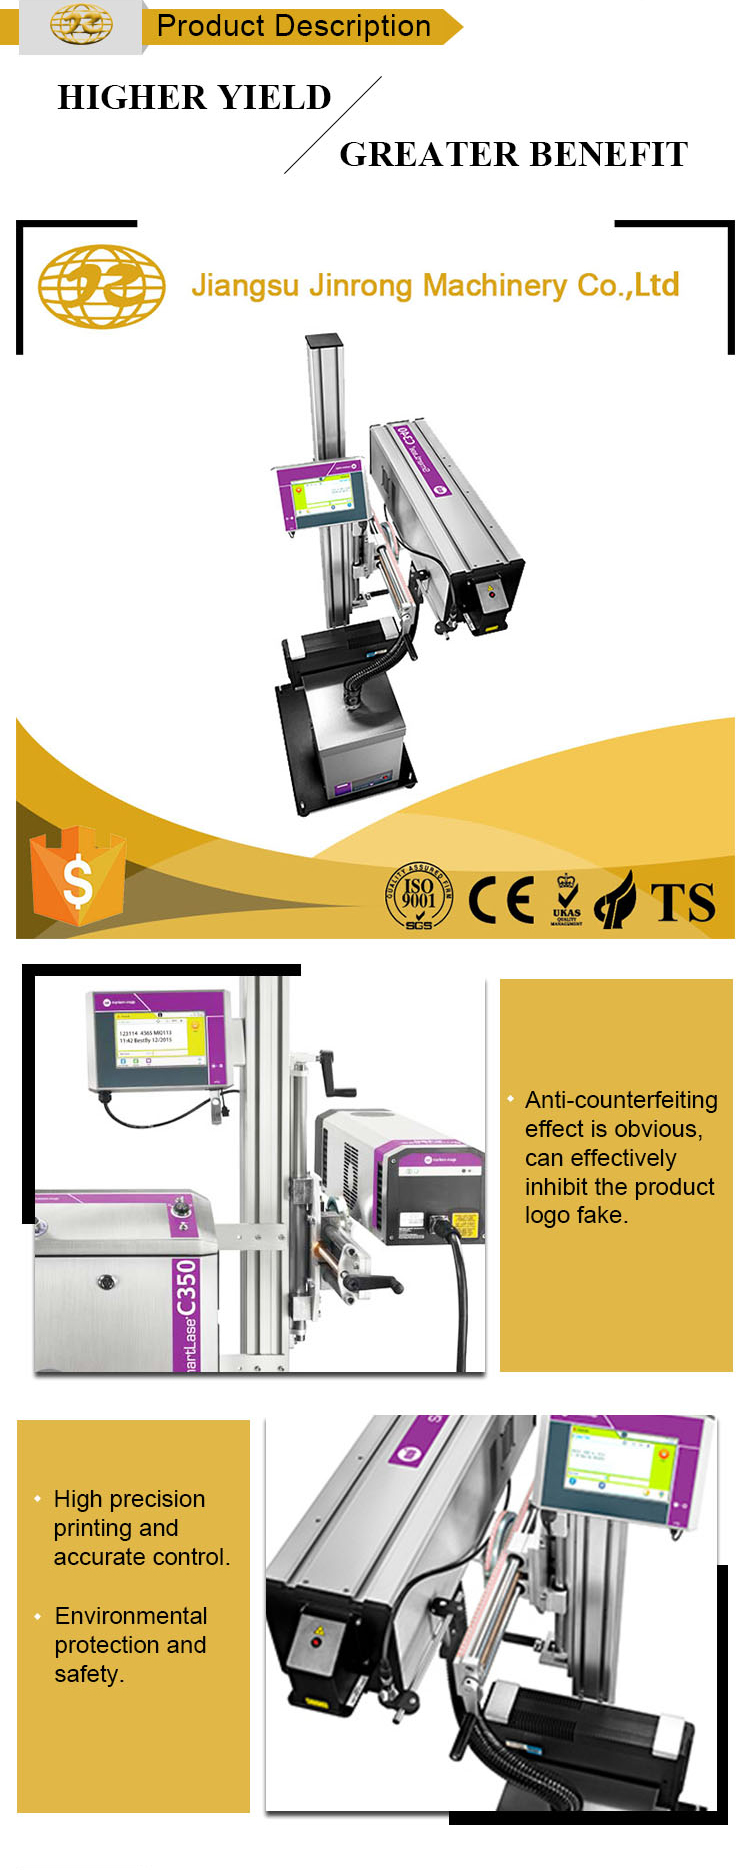 Industrial multifunction color 3D laser printer for plastic bottle marking machine price